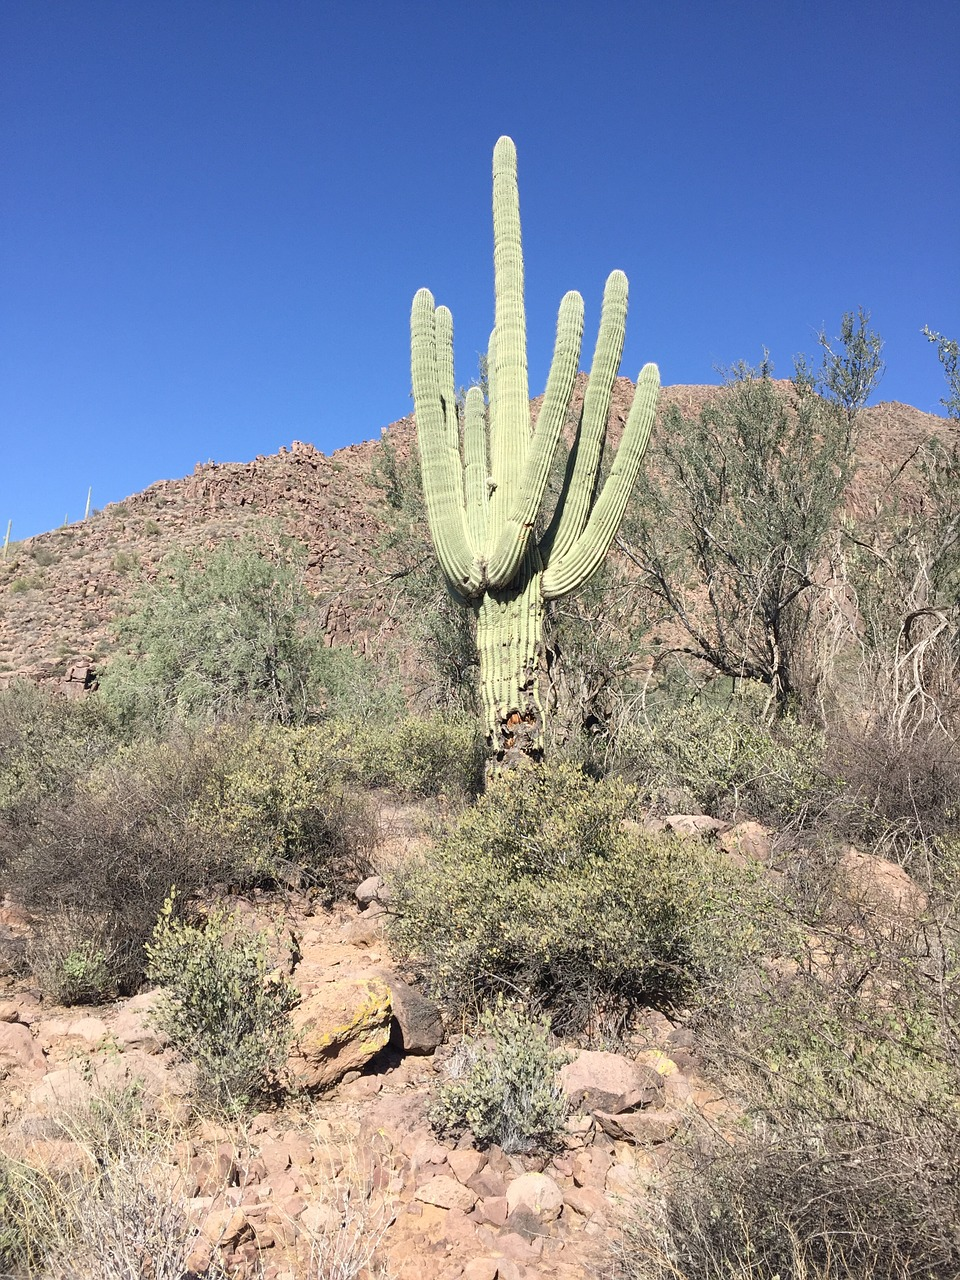 desert,cactus,arizona,nature,landscape,saguaro,desert landscape,southwest,arizona desert,outdoor,scenic,southwestern,wilderness,free pictures, free photos, free images, royalty free, free illustrations, public domain